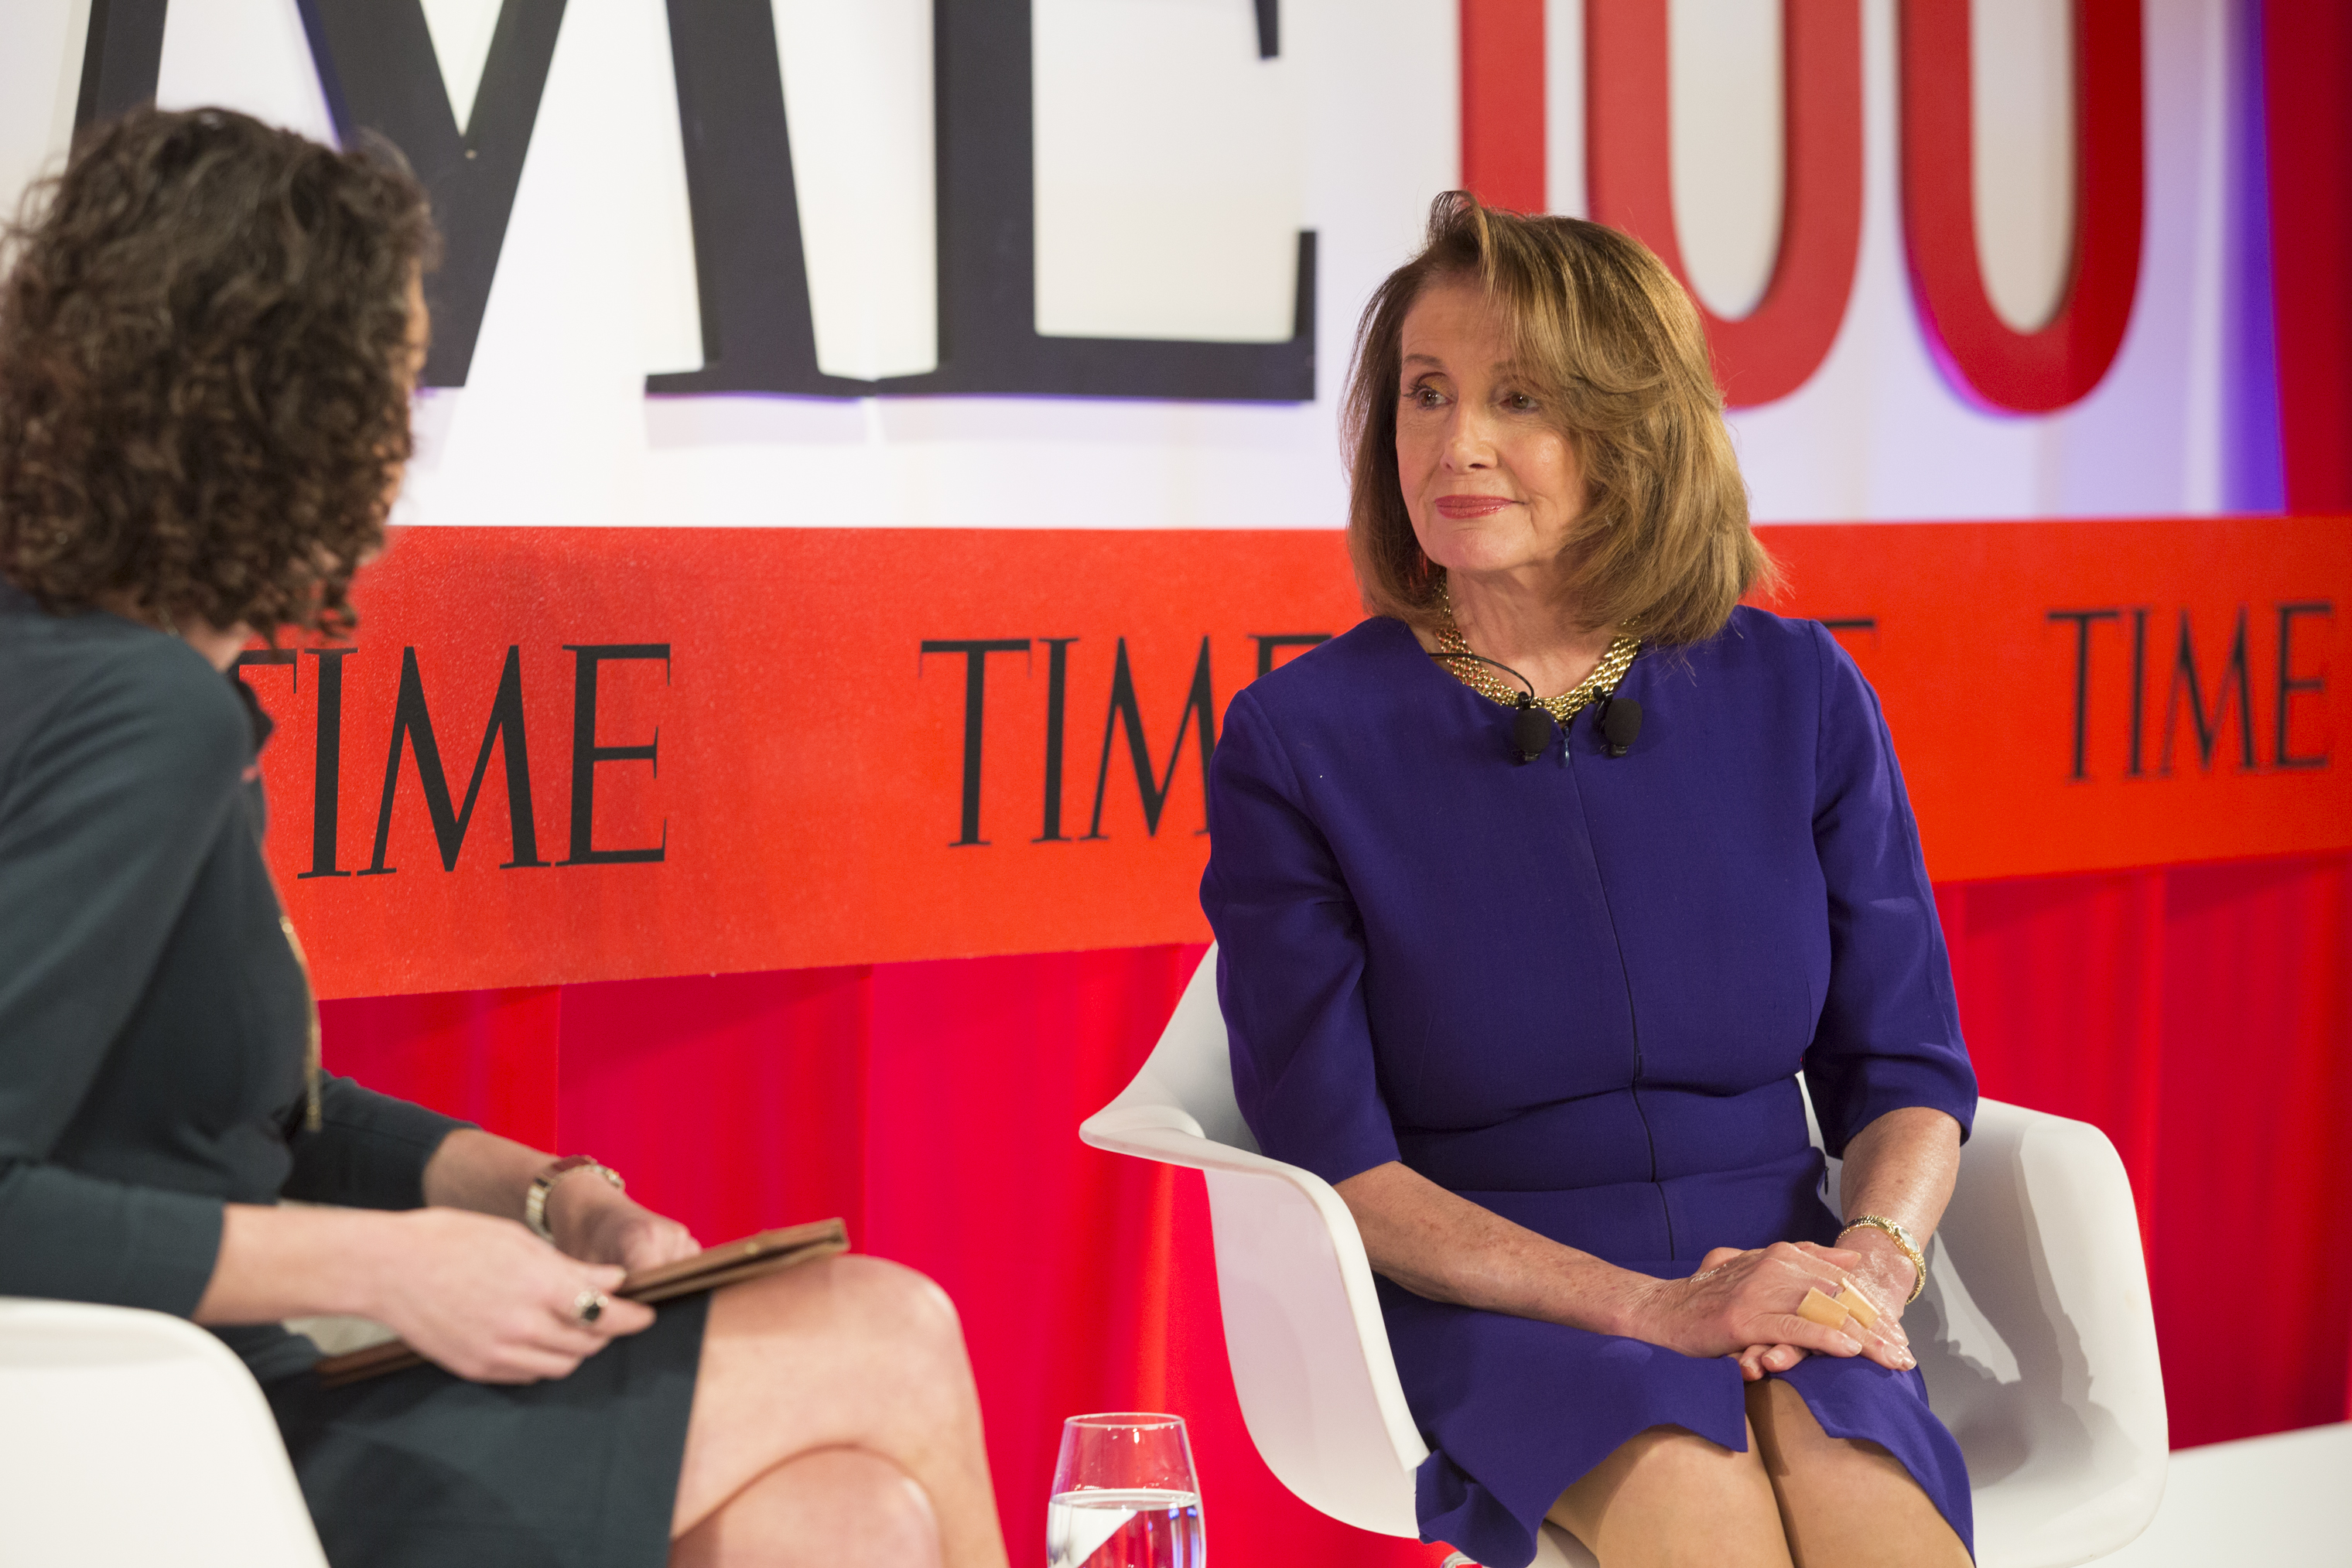 Molly Ball, National Political Correspondent for TIME, interviews Nancy Pelosi at the TIME100 Summit in New York on April 23, 2019.